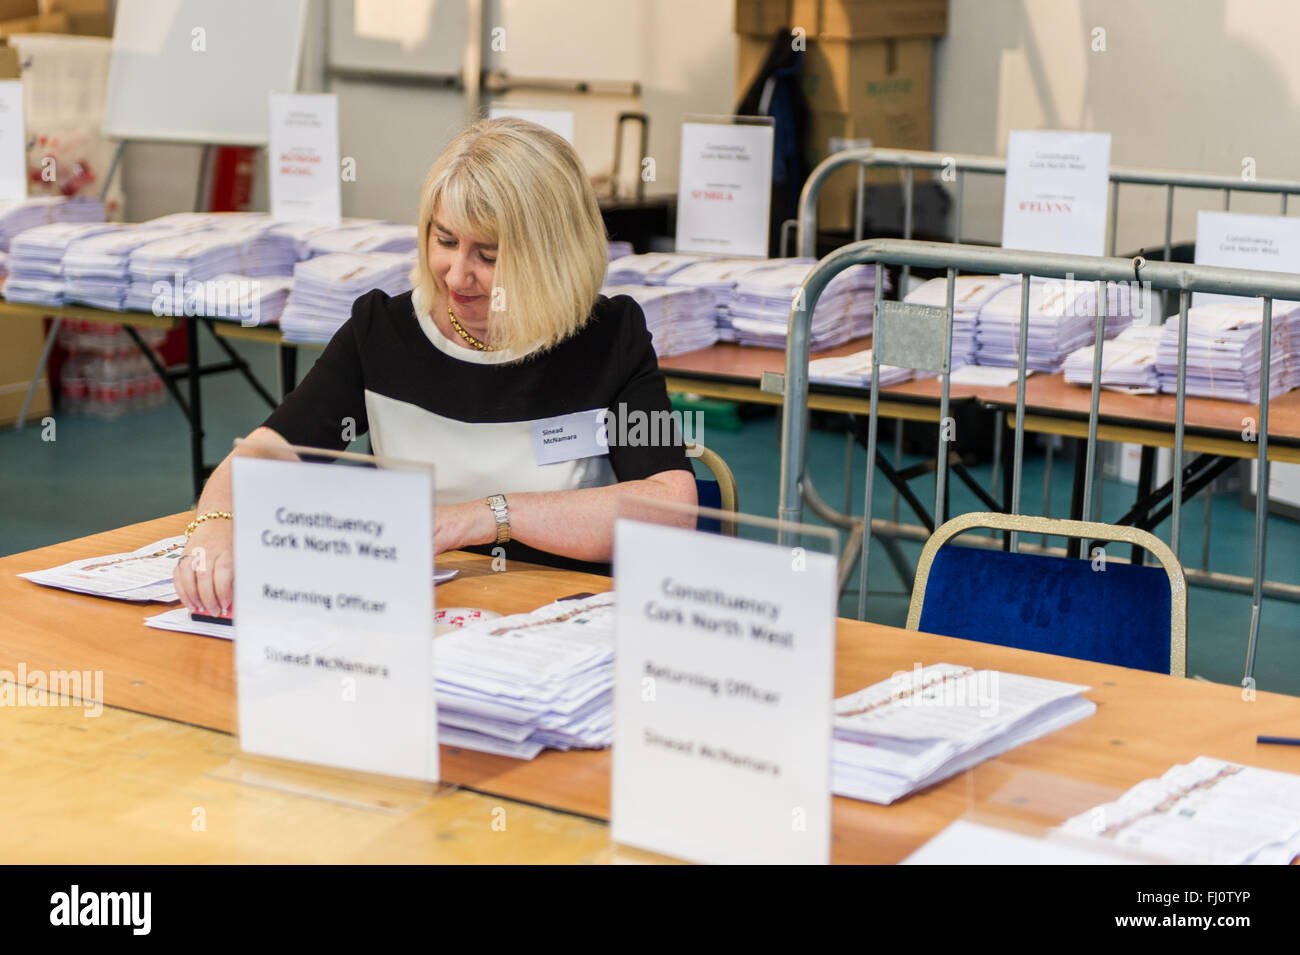 Ballincollig, Ireland. 27th February, 2016. Cork North West Returning Officer, Sinead McNamara stamps the spoiled - Stock Image